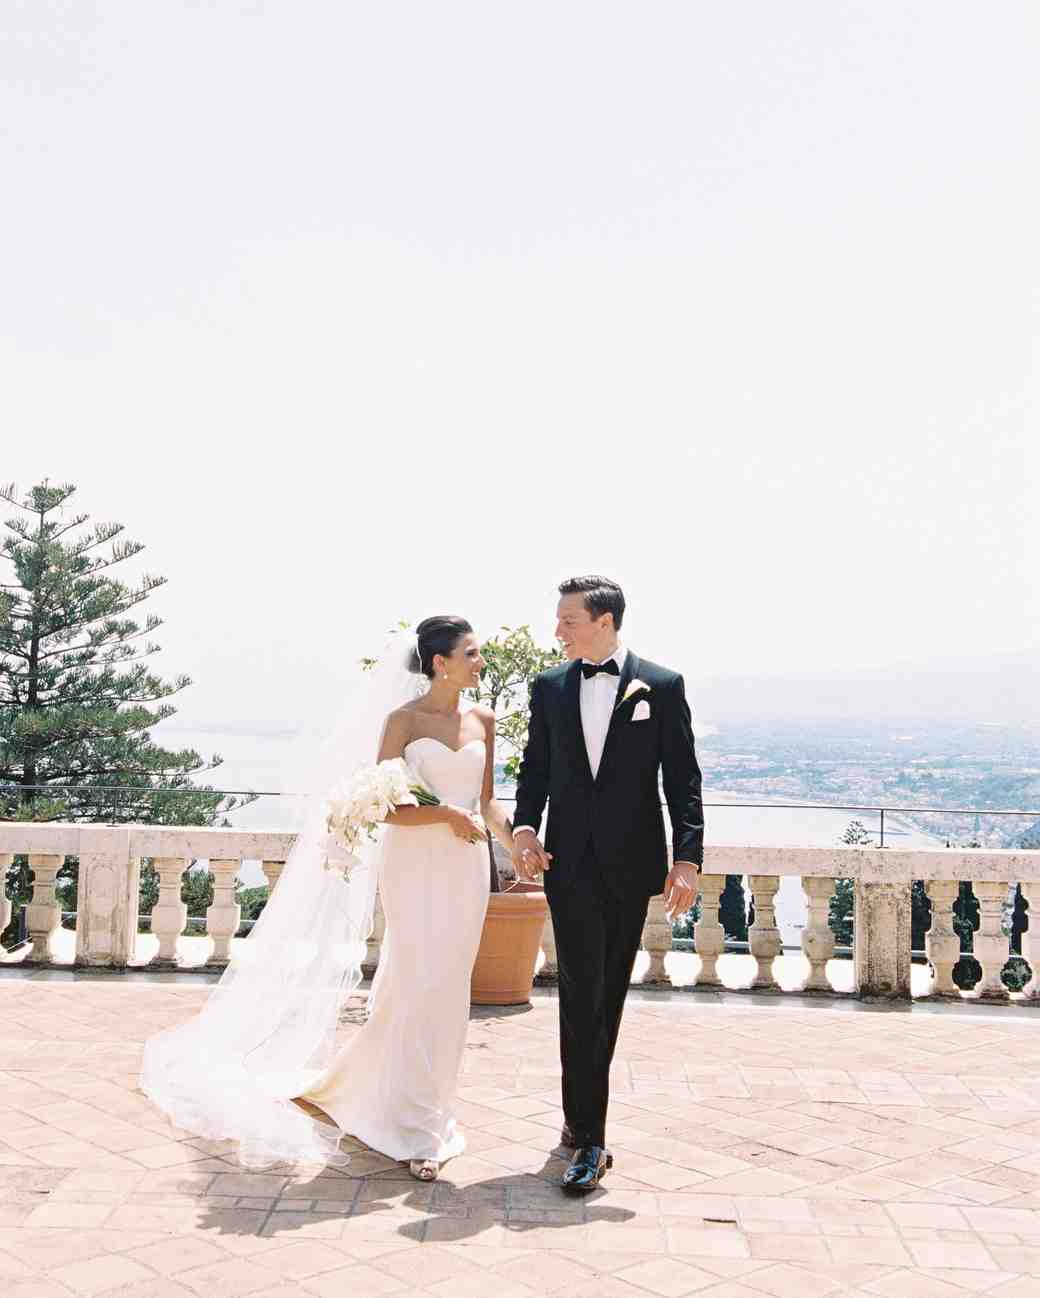 This Classic Wedding In Italy Began With An Unforgettable